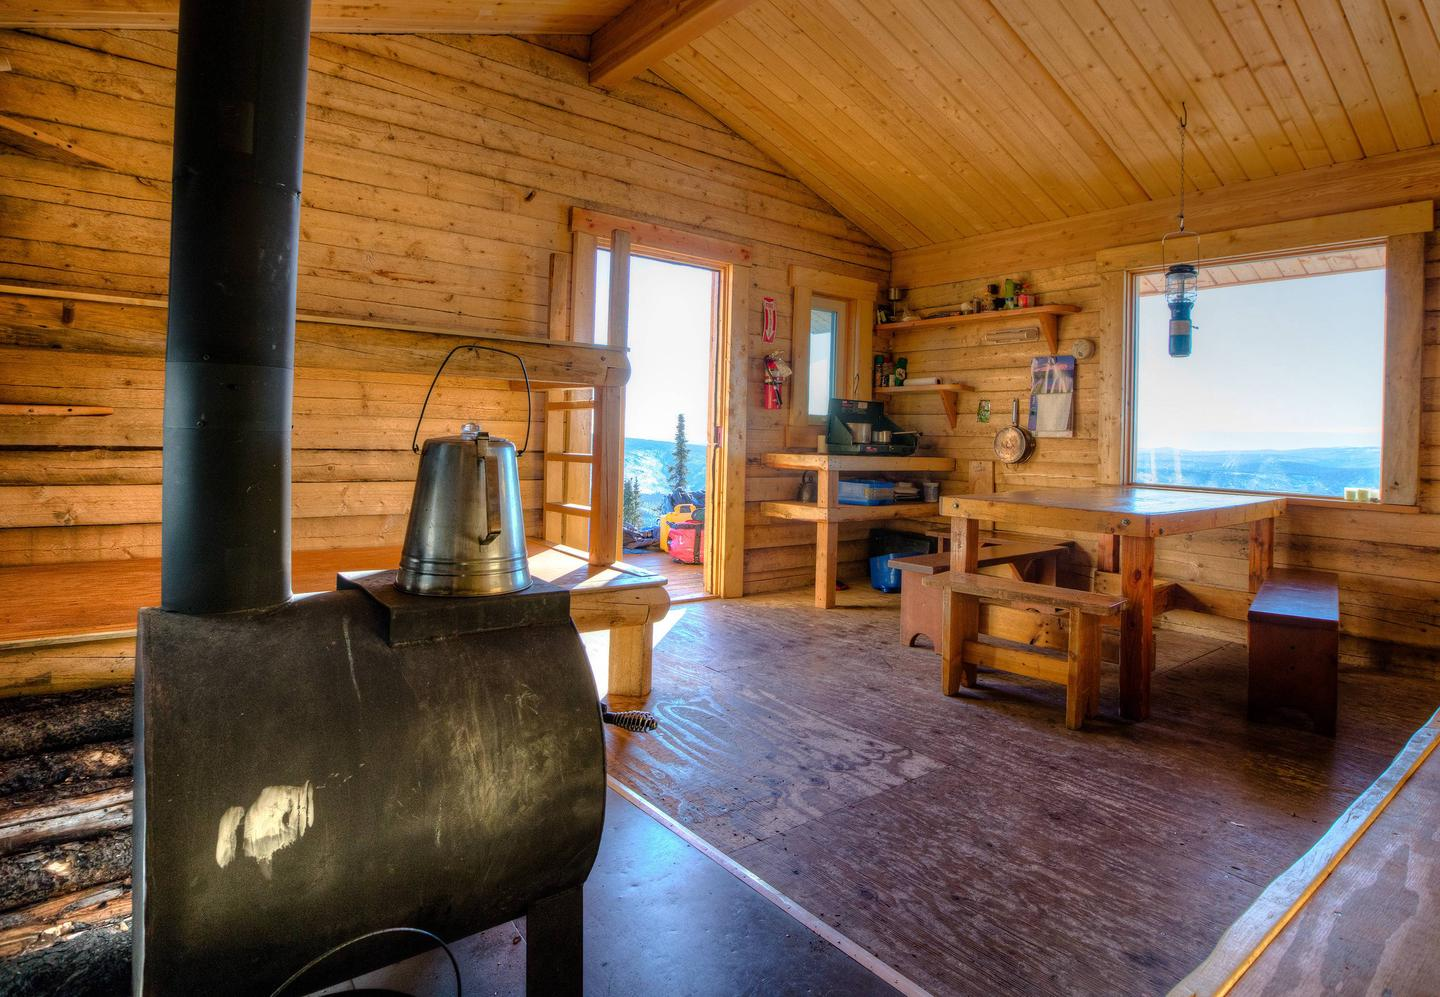 Cabin interior with woodstove, table, and benches.Interior view of Moose Creek Cabin